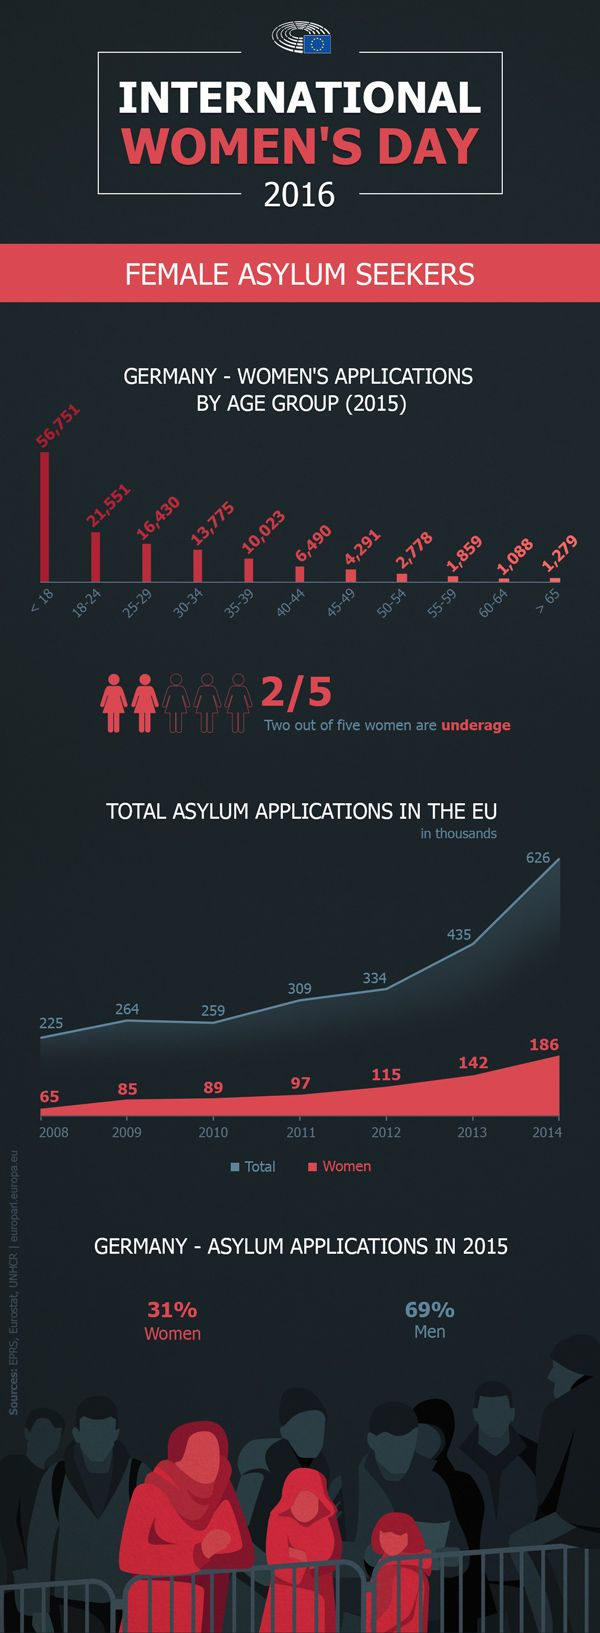 Female asylum seekers: two out of five are underage